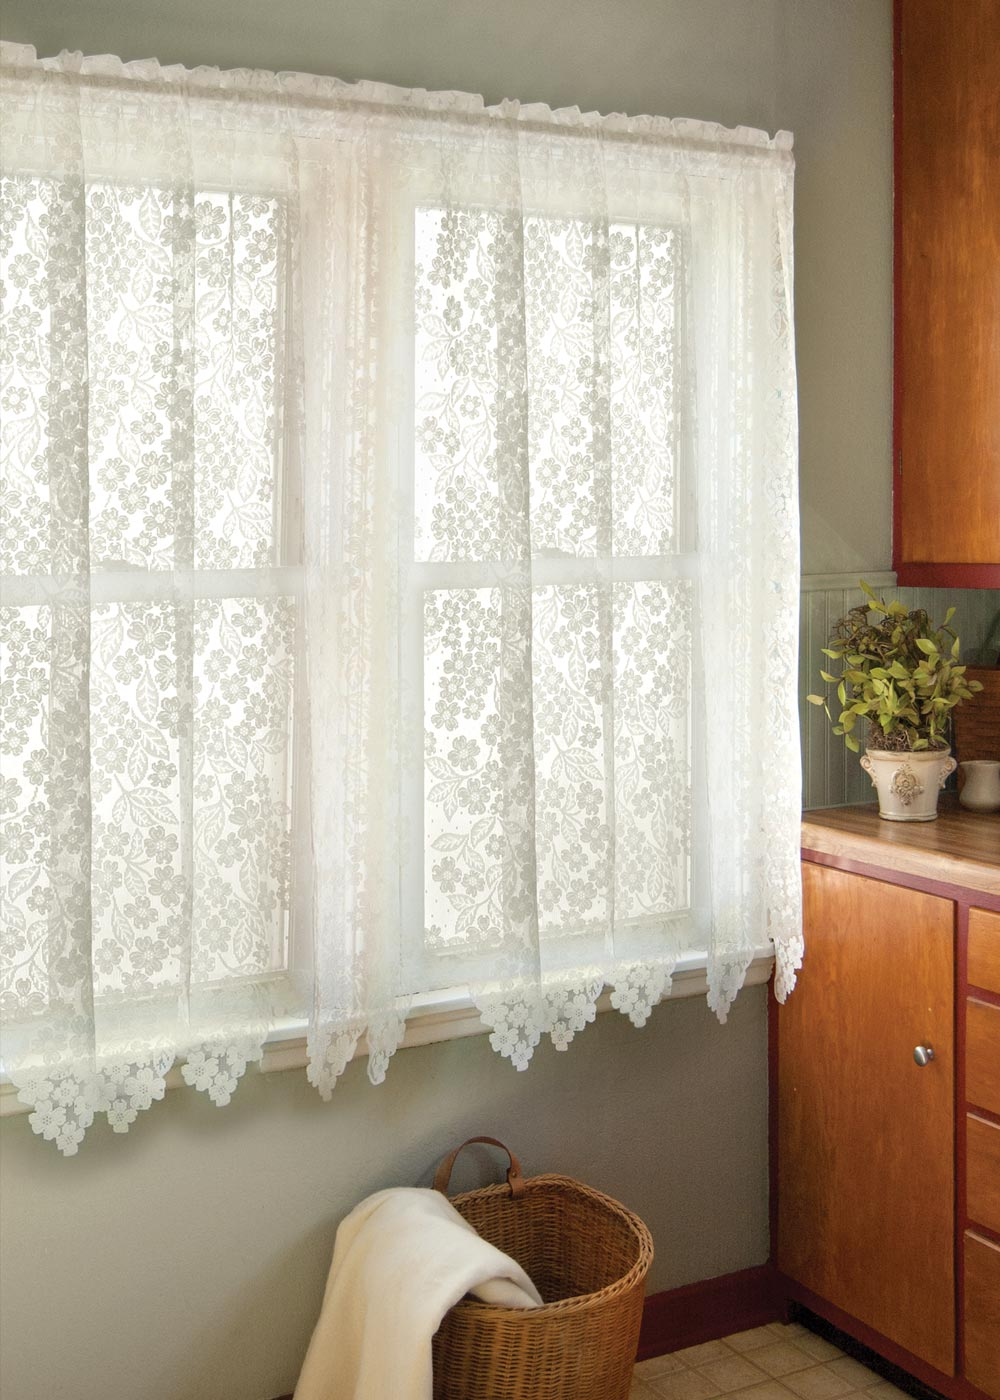 White lace curtains 63 inches - White Lace Curtains 63 Inches 59